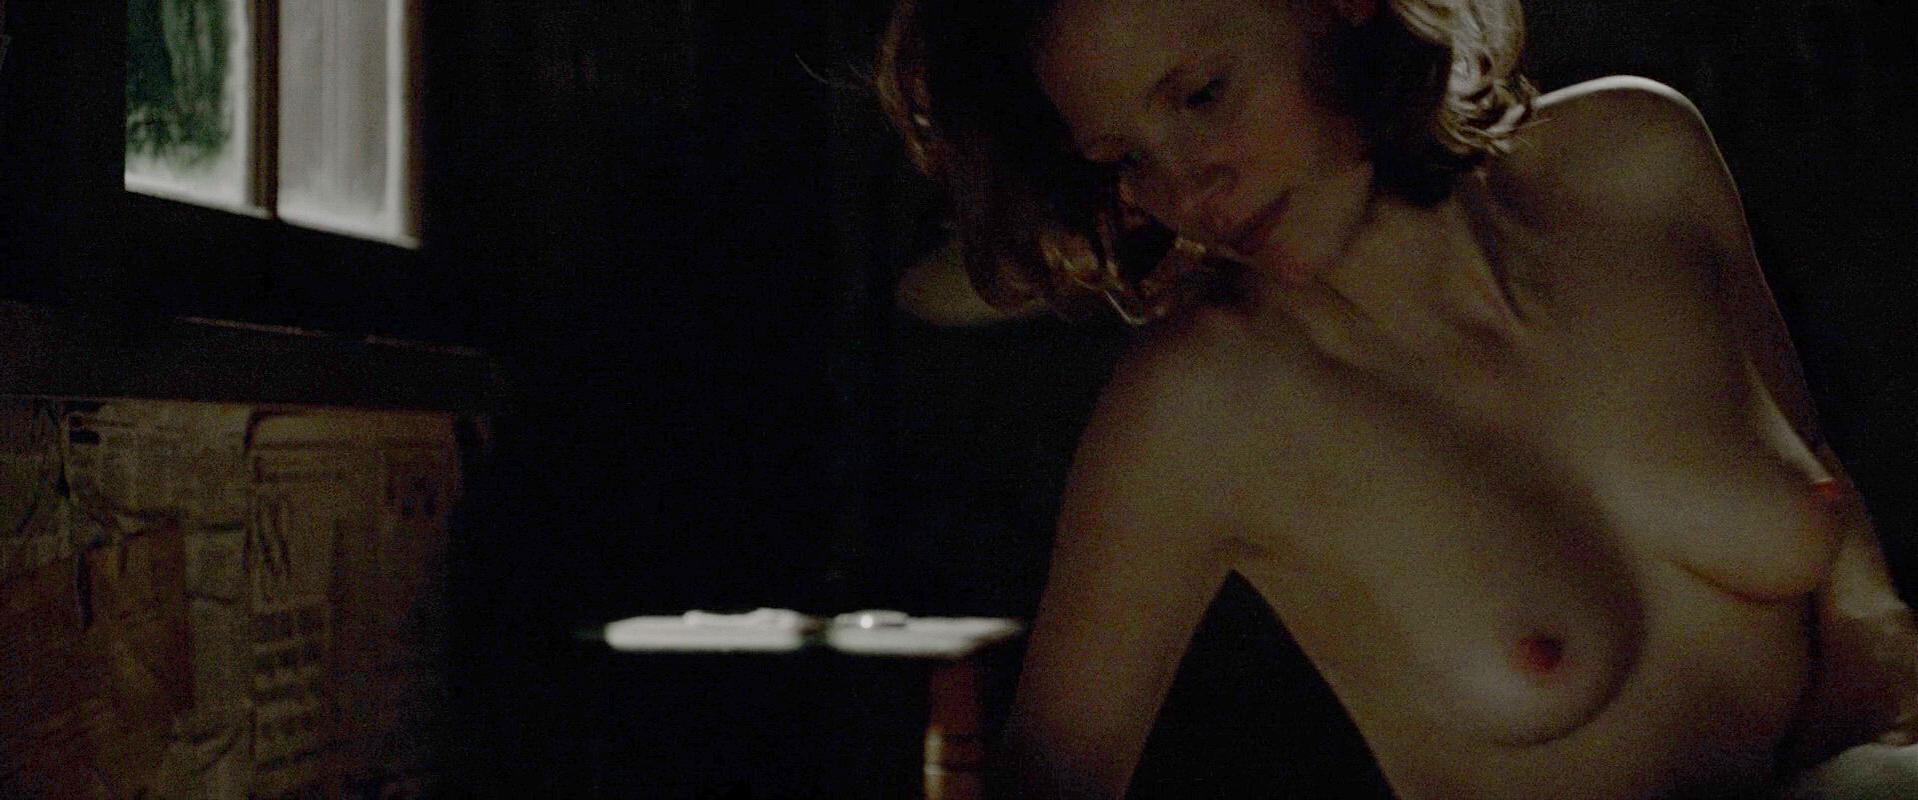 Jessica Chastain Nude Images photo 22